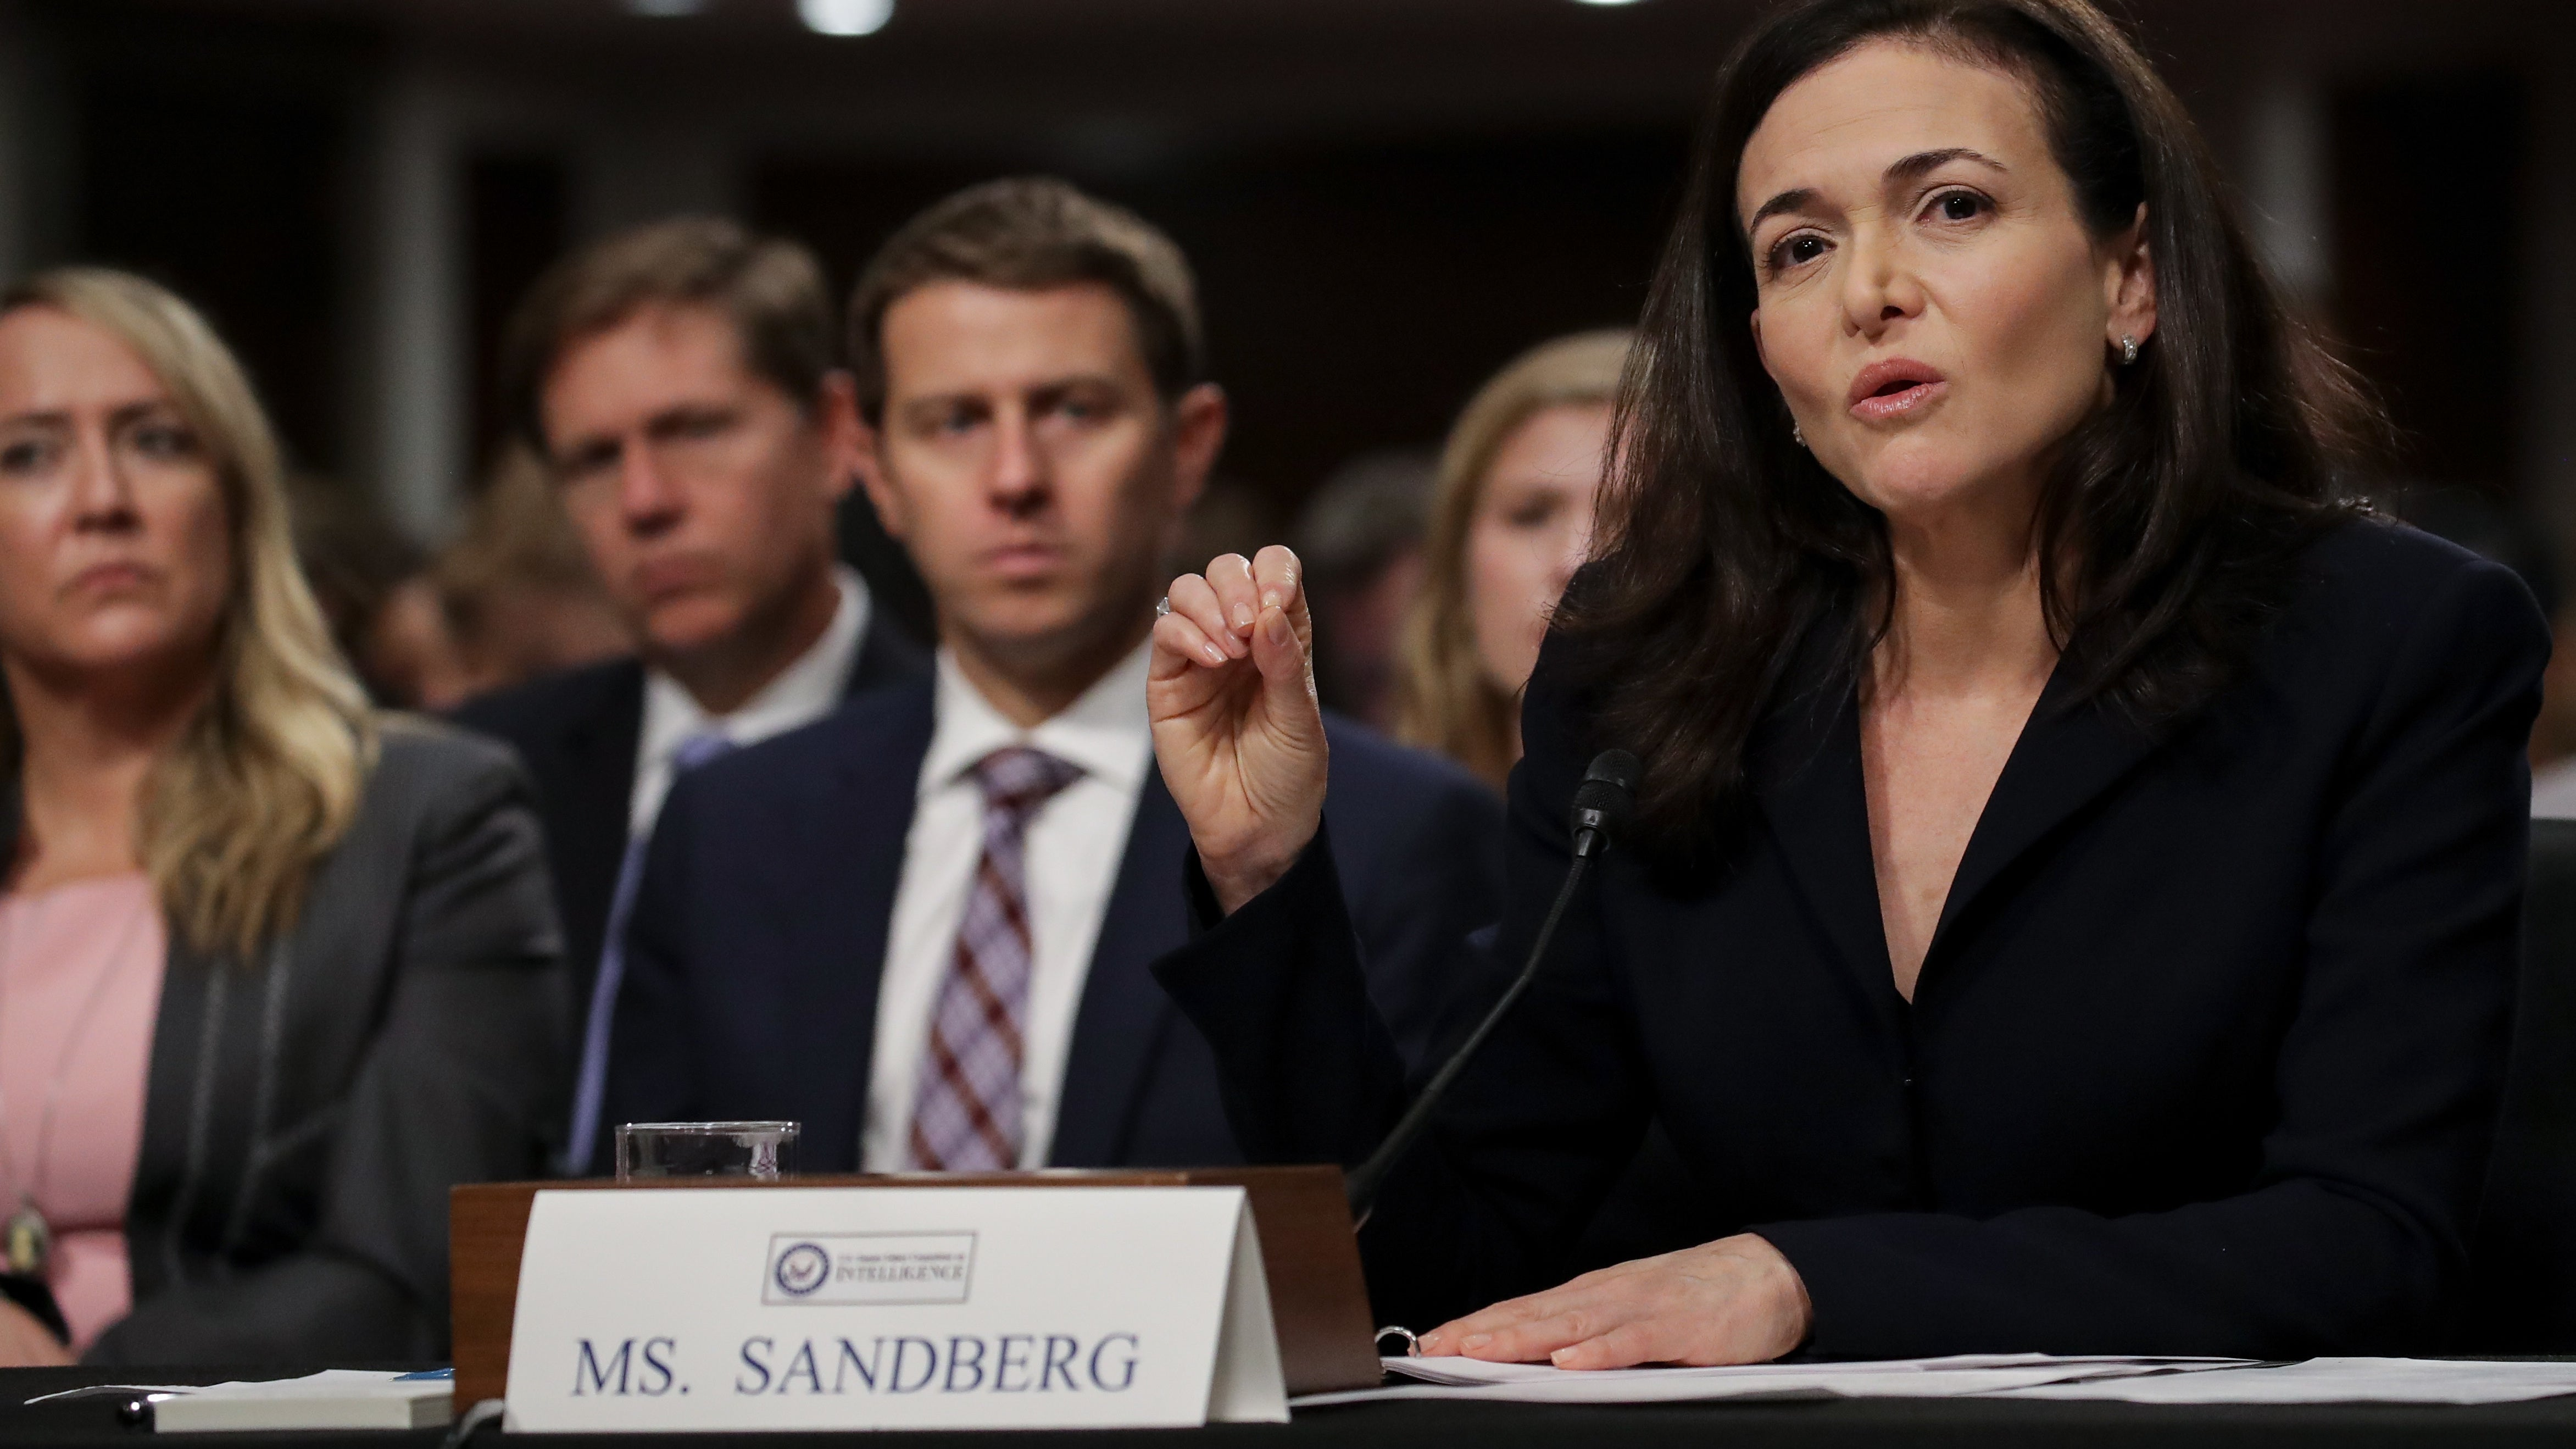 Facebook Quietly Told Congress It Bungled Monitoring Of User Data Handed To Phone Makers